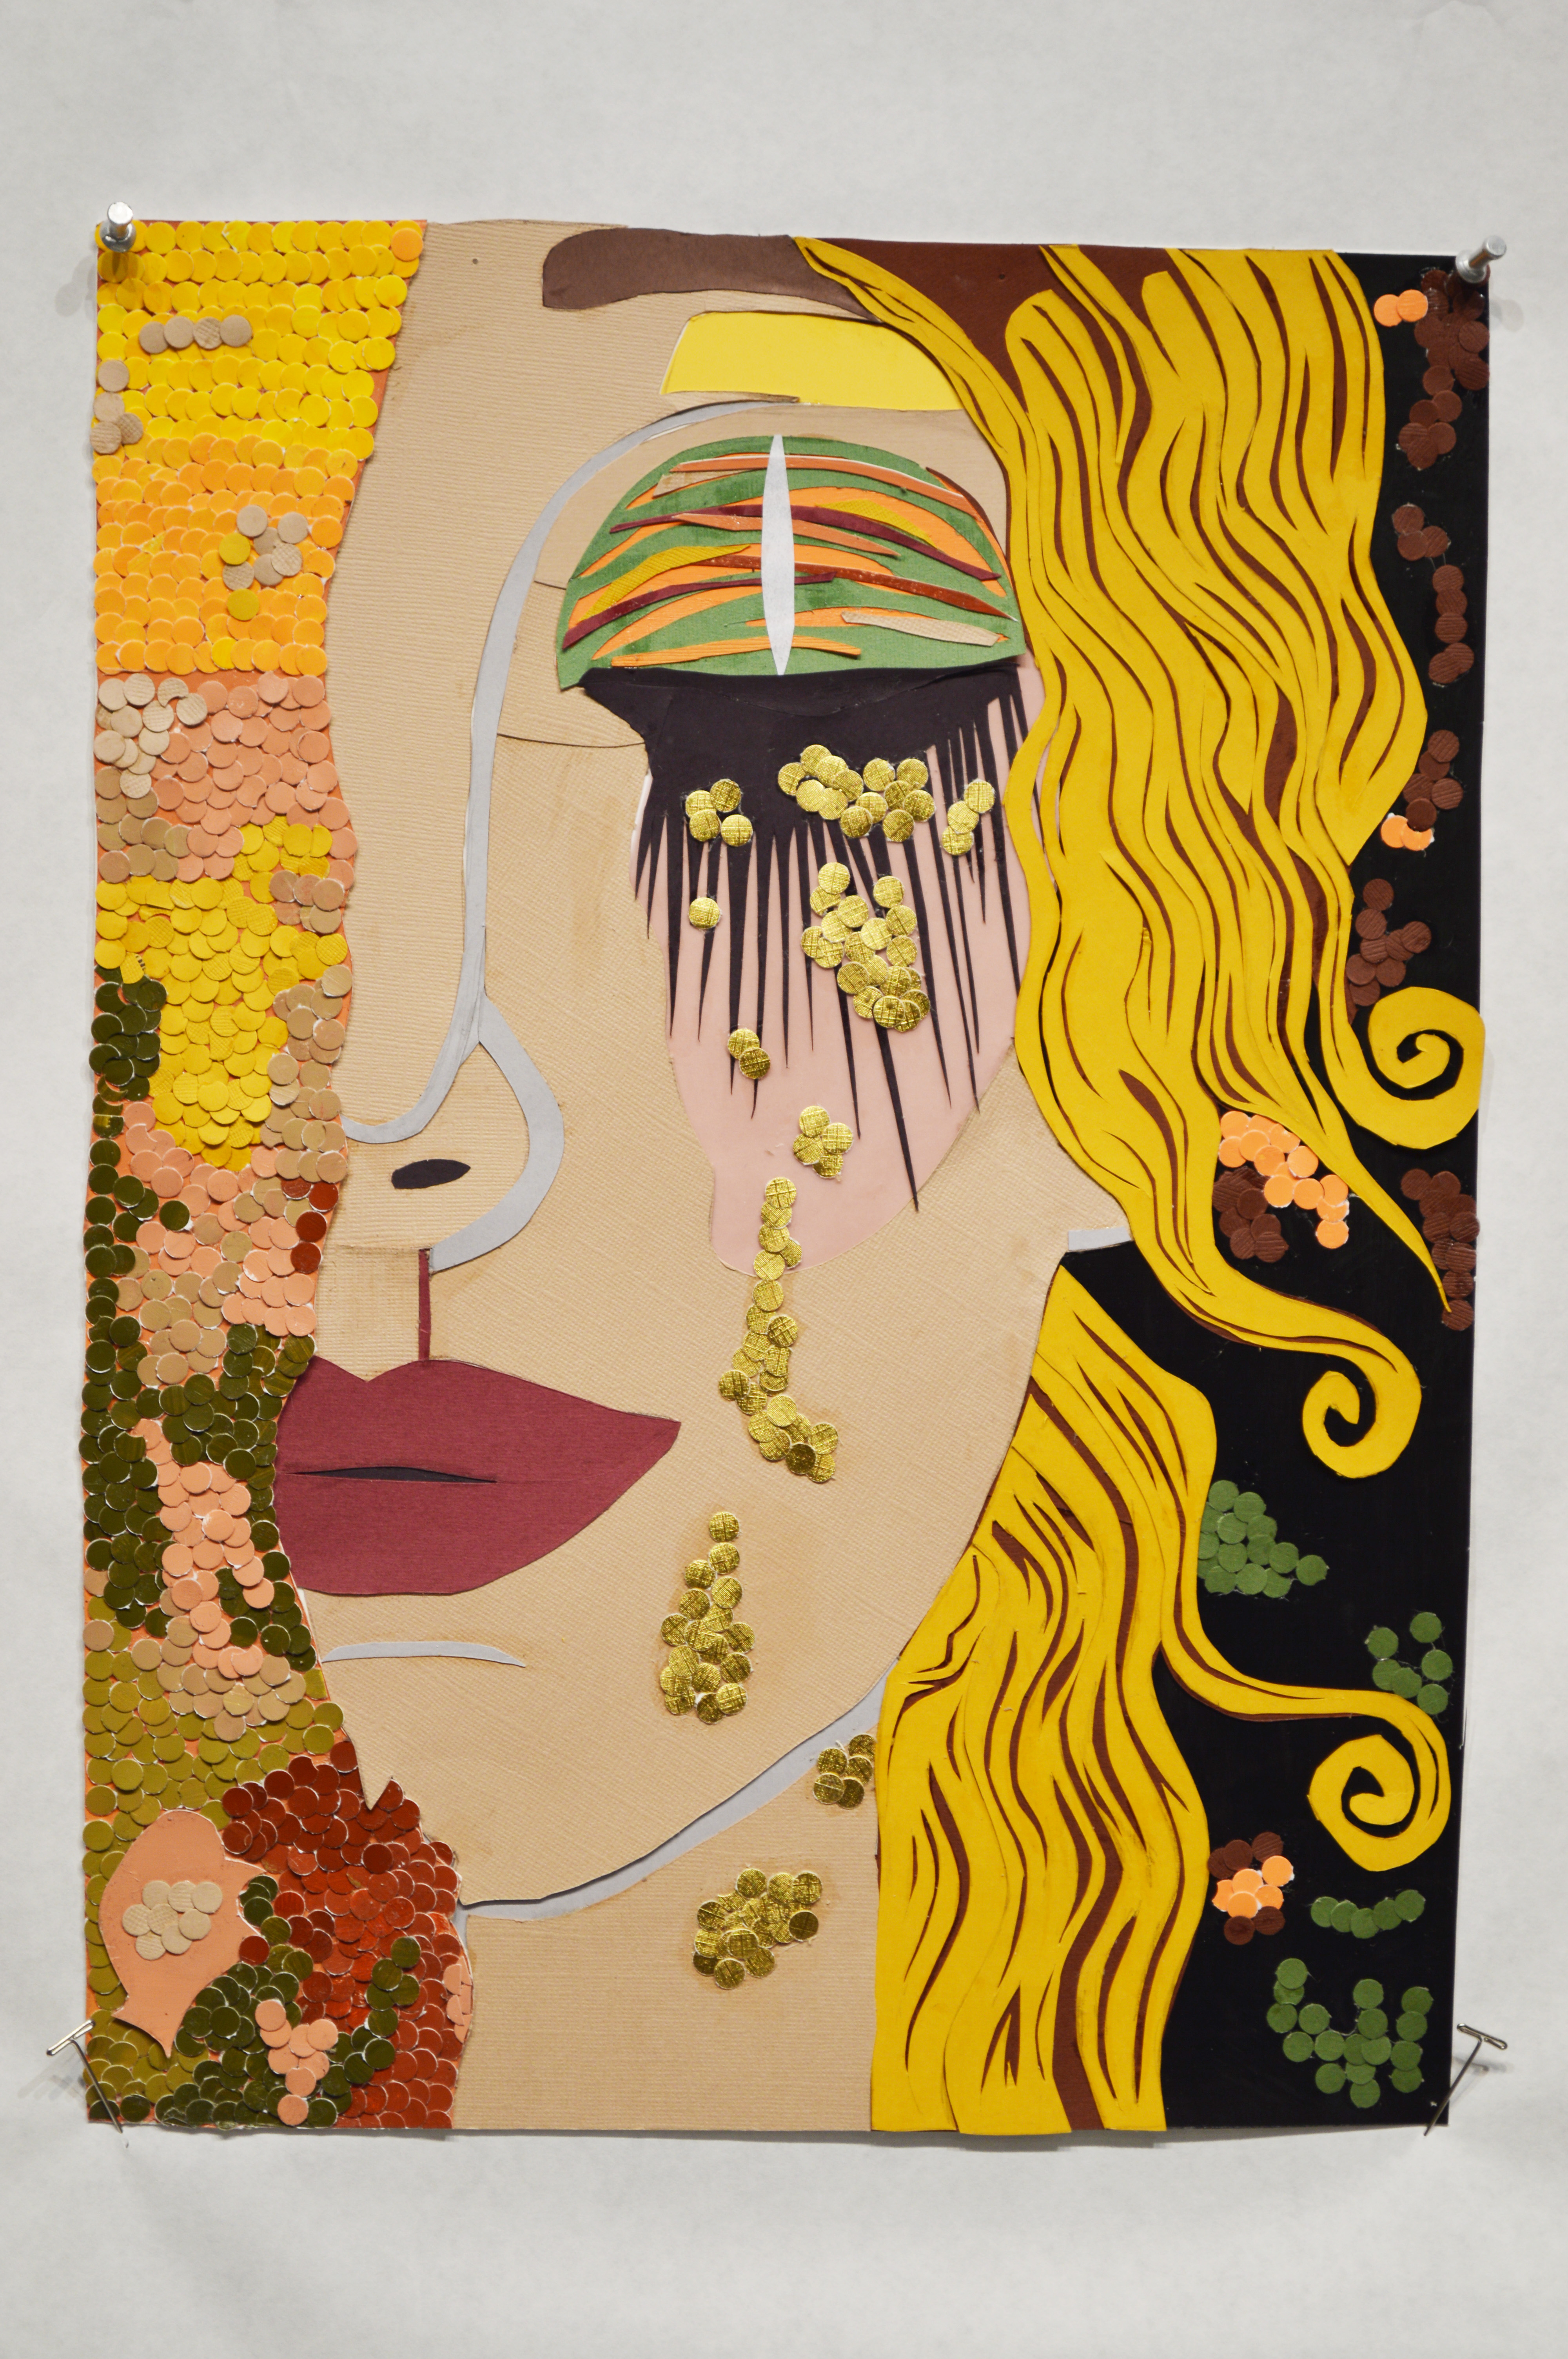 Painting in the style of Gustav Klimt of the side of a face with gold eyeshadow and red lipstick and yellow wavy hair.